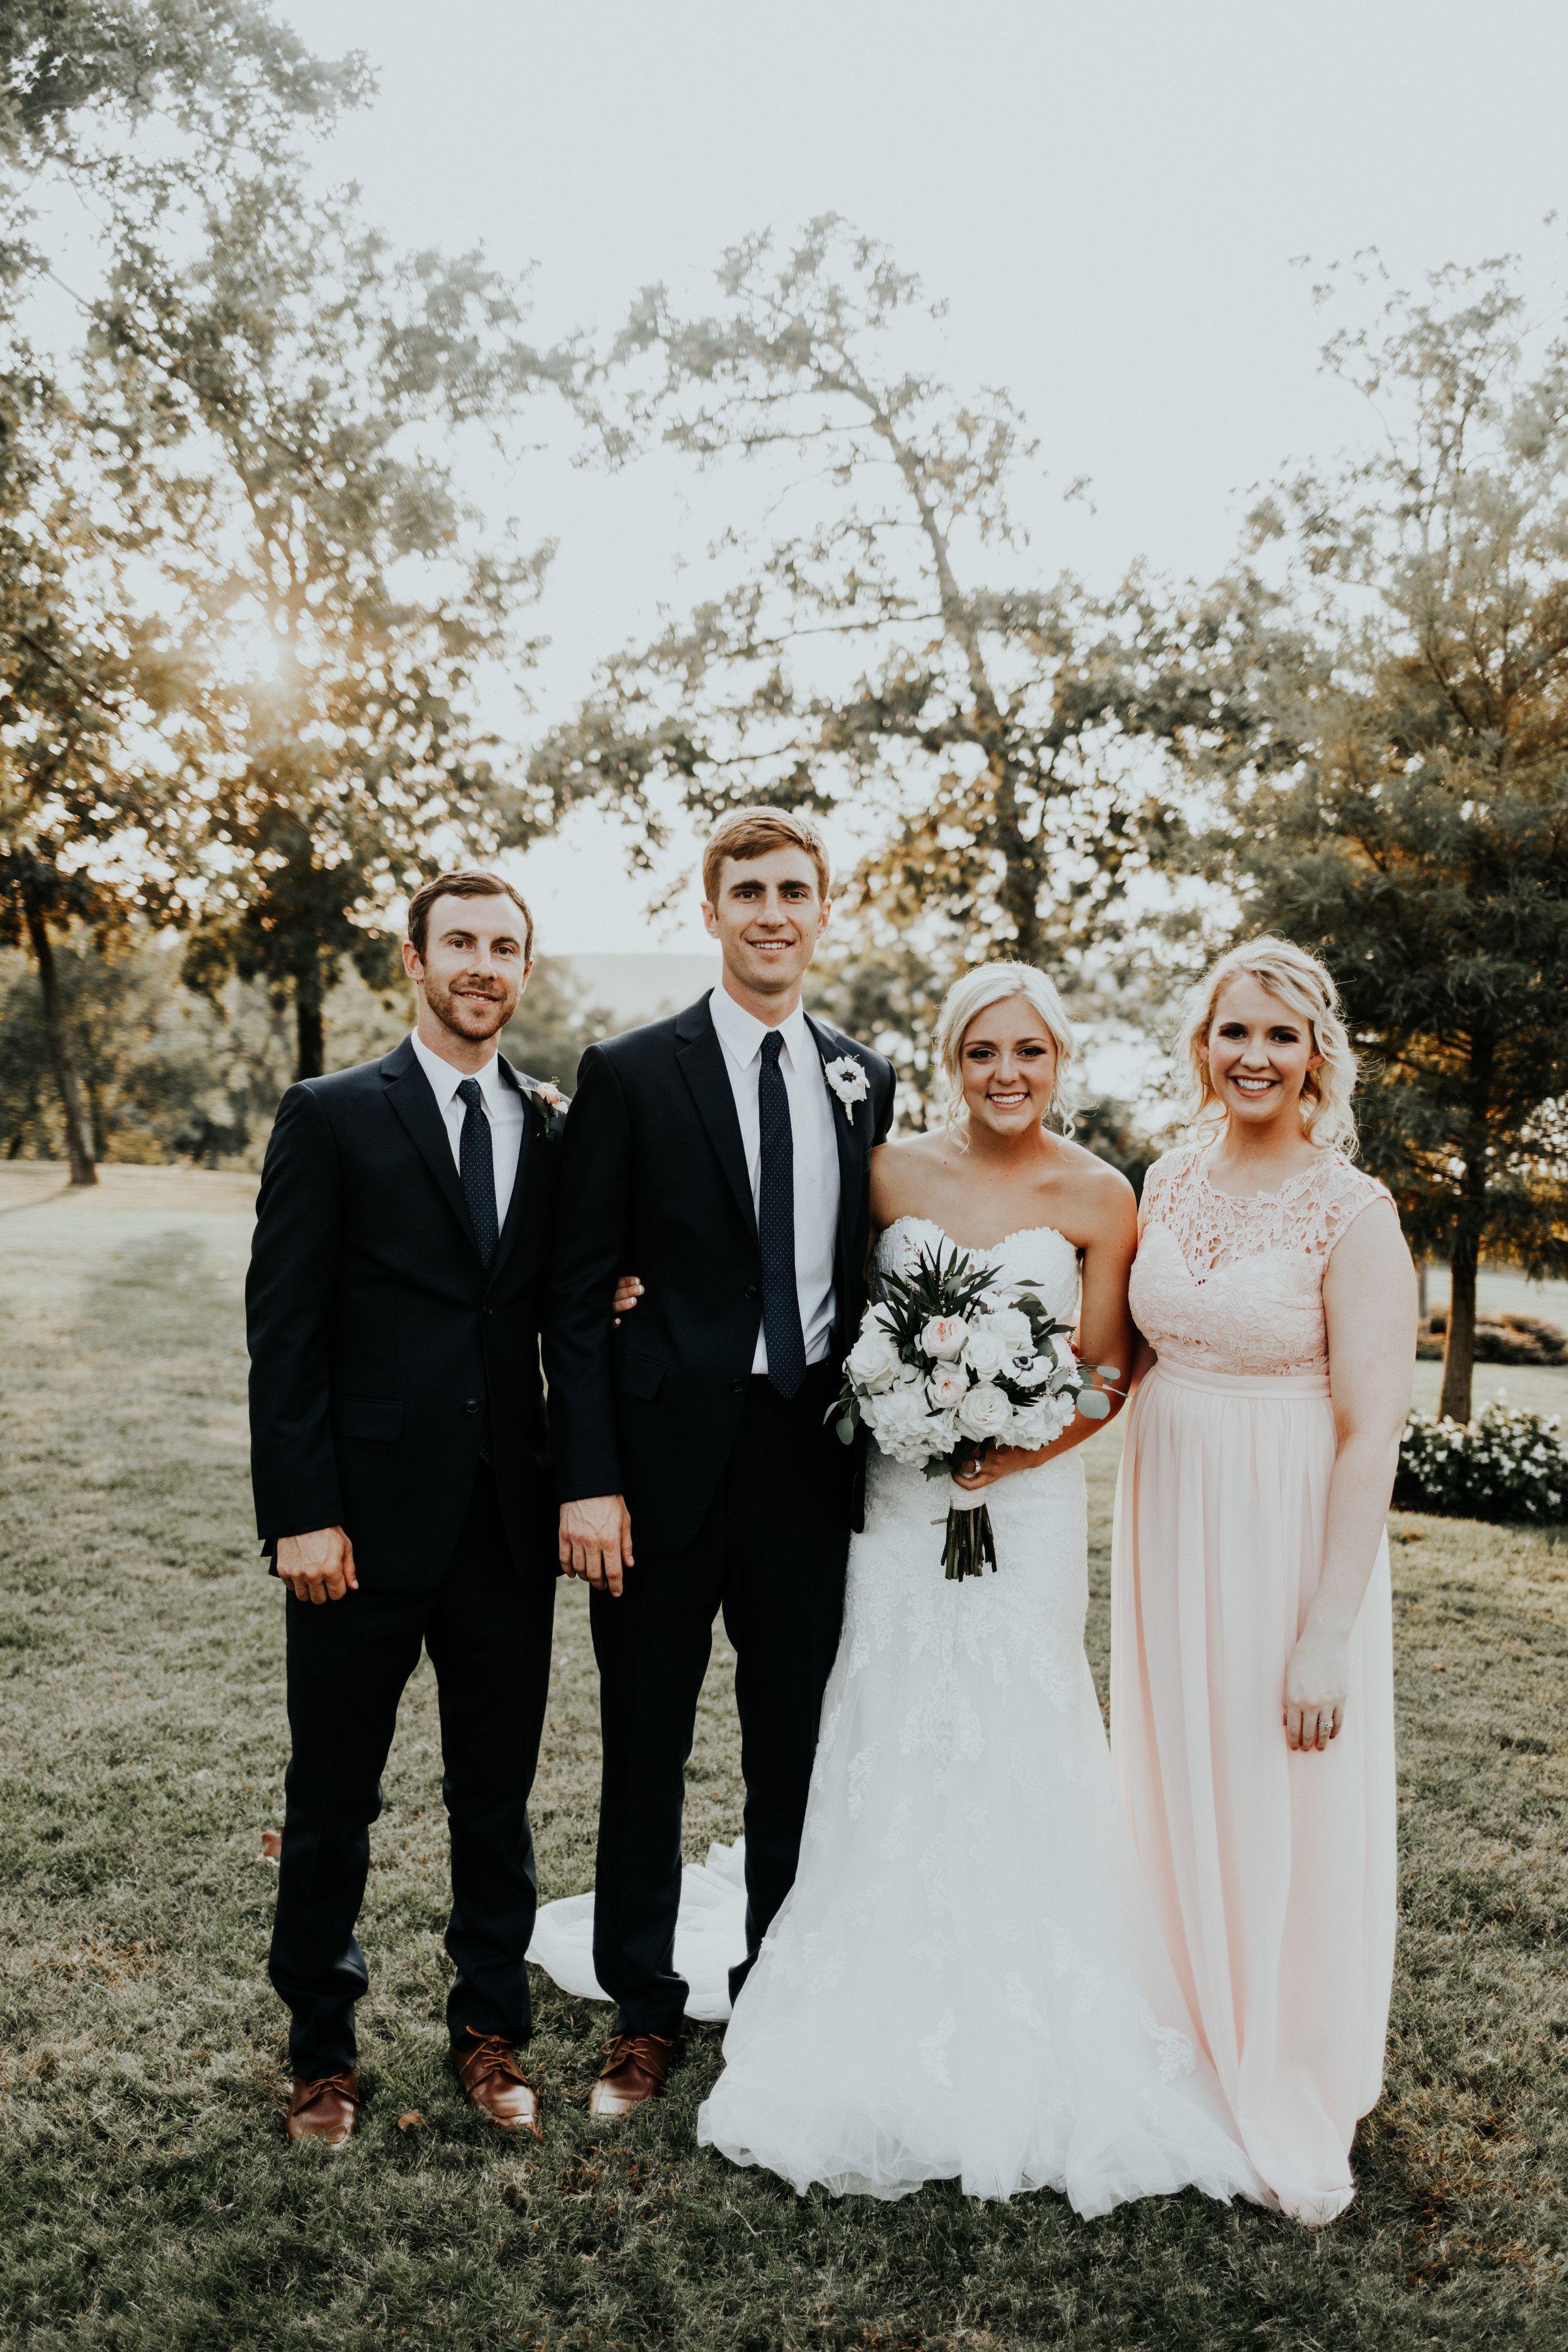 Both of my Miller couples! I coordinated Stephanie and Austin's wedding almost 2 years ago. At the time, Katie and Payton were just dating. When they got engaged, Katie called me to coordinate her wedding! I love seeing couples after their wedding and staying in touch!